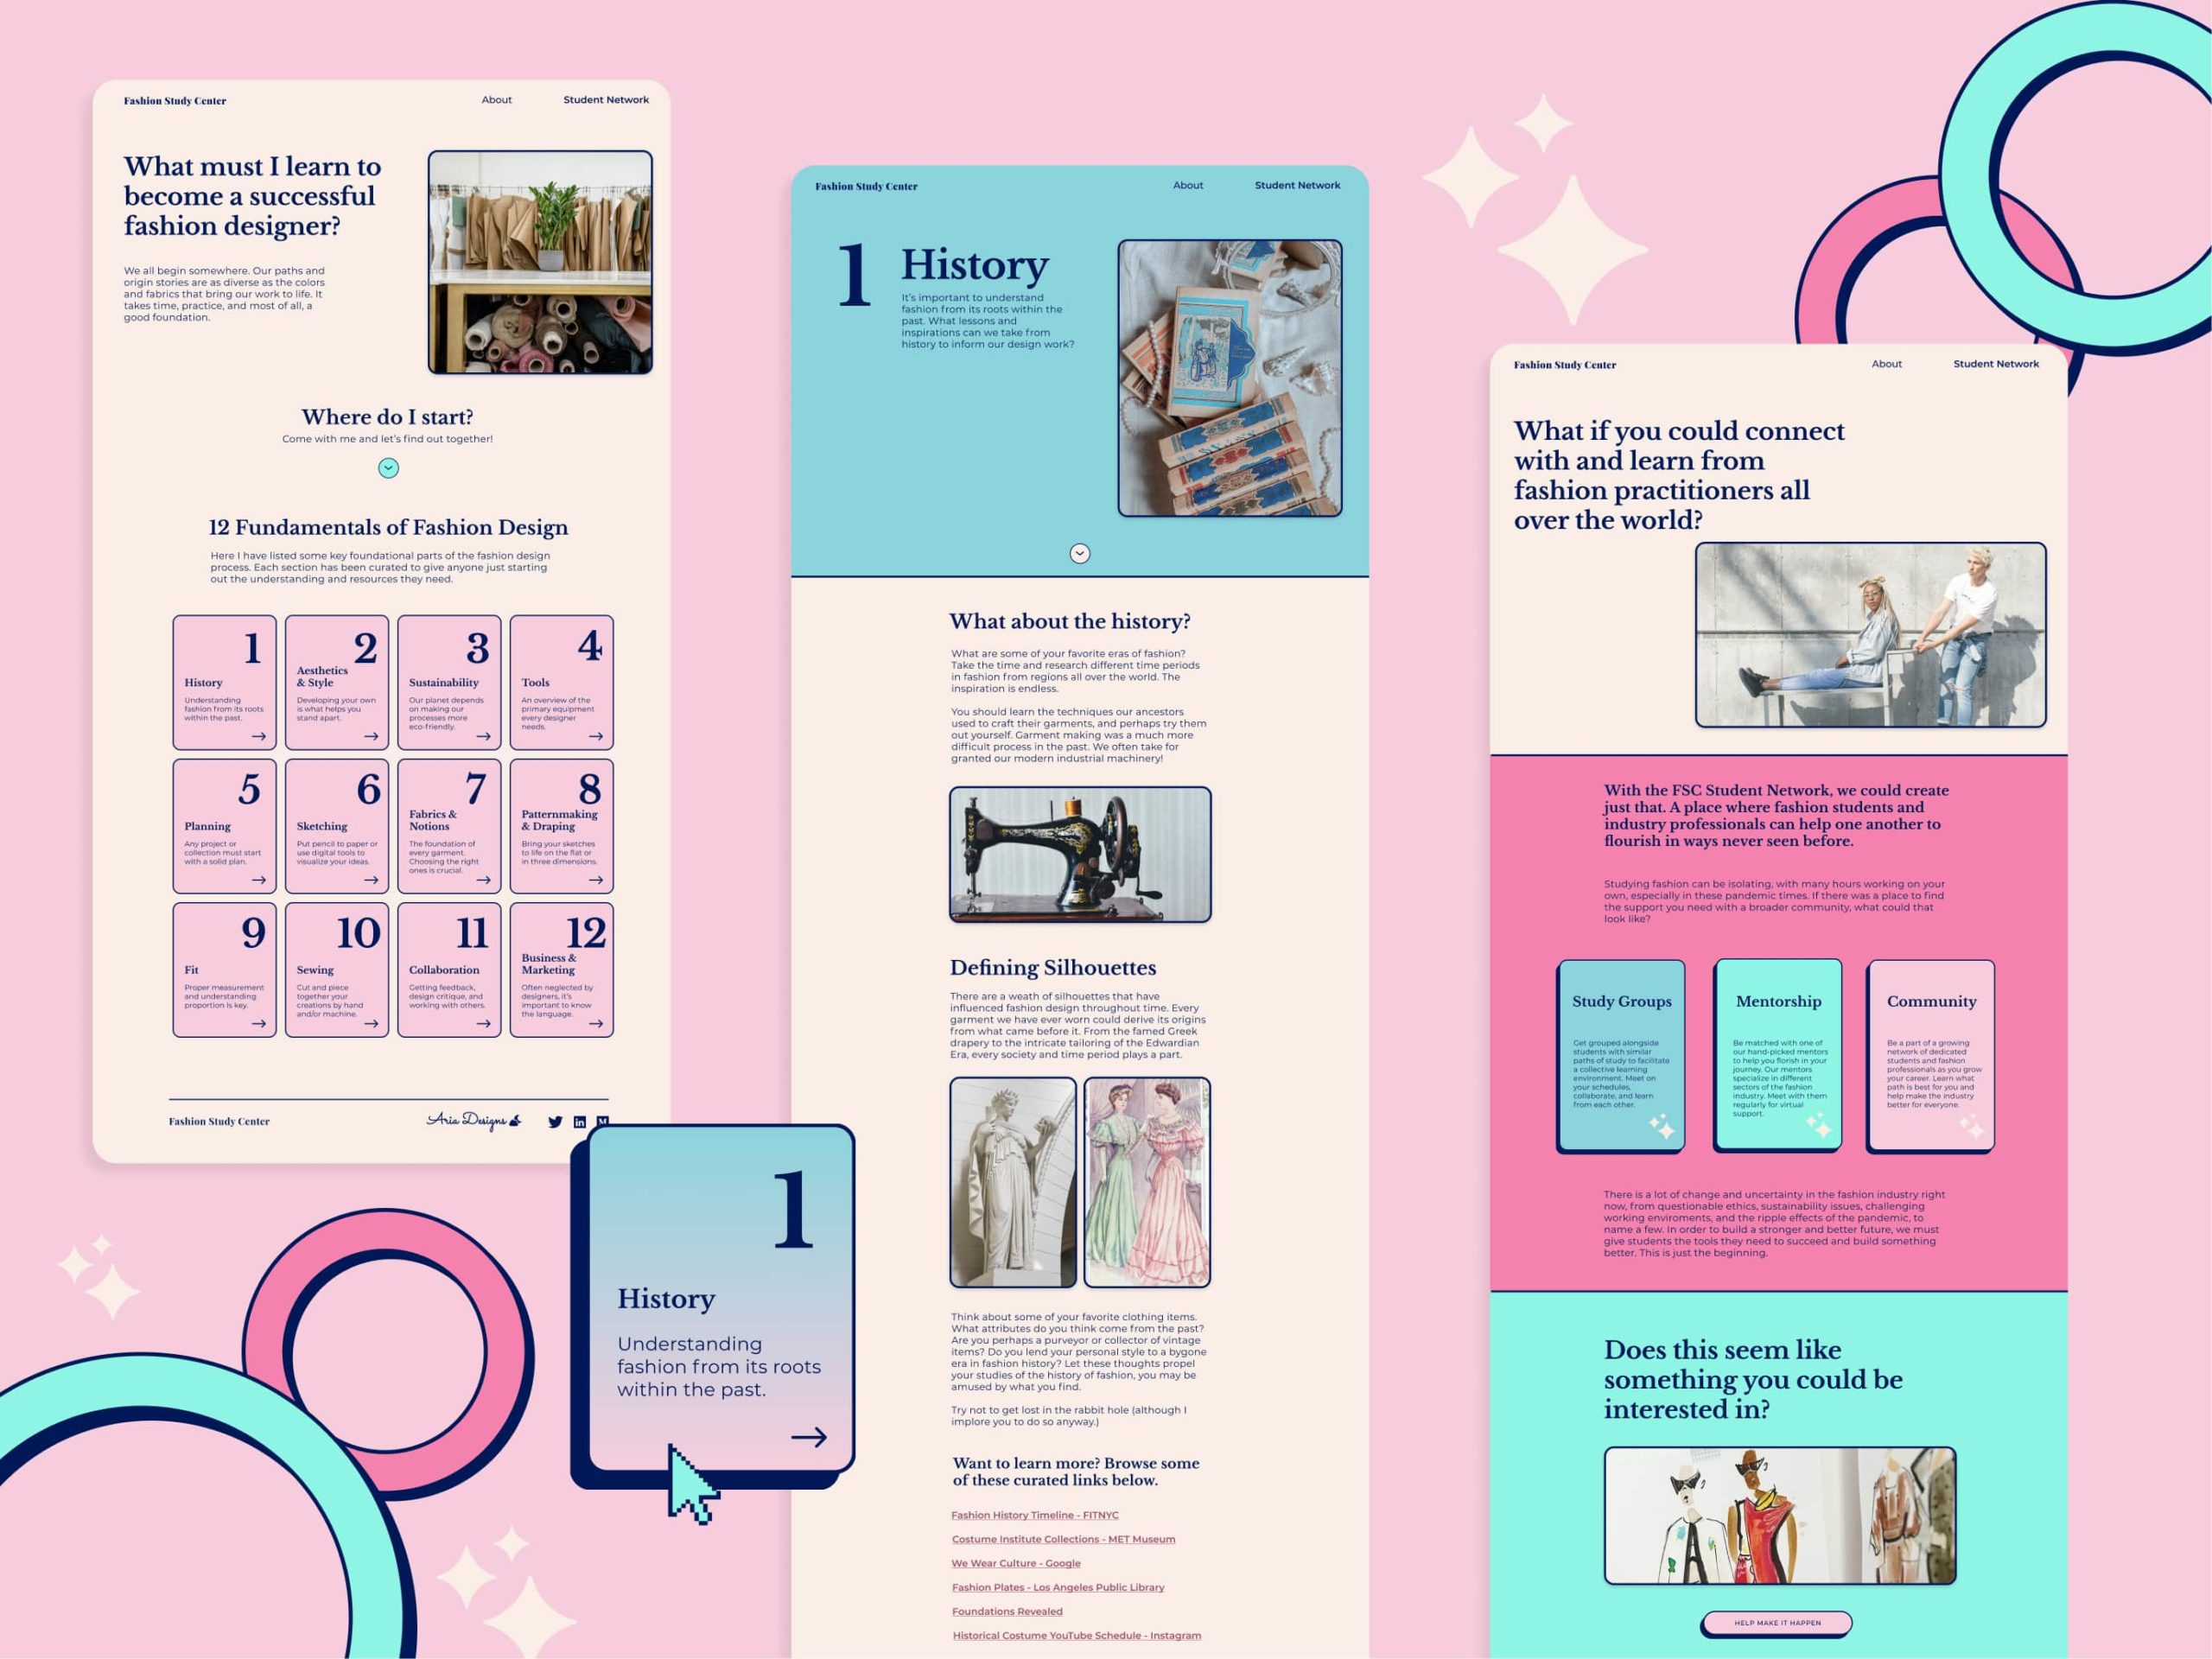 Dynamic display image of the main pages of the Fashion Study Center